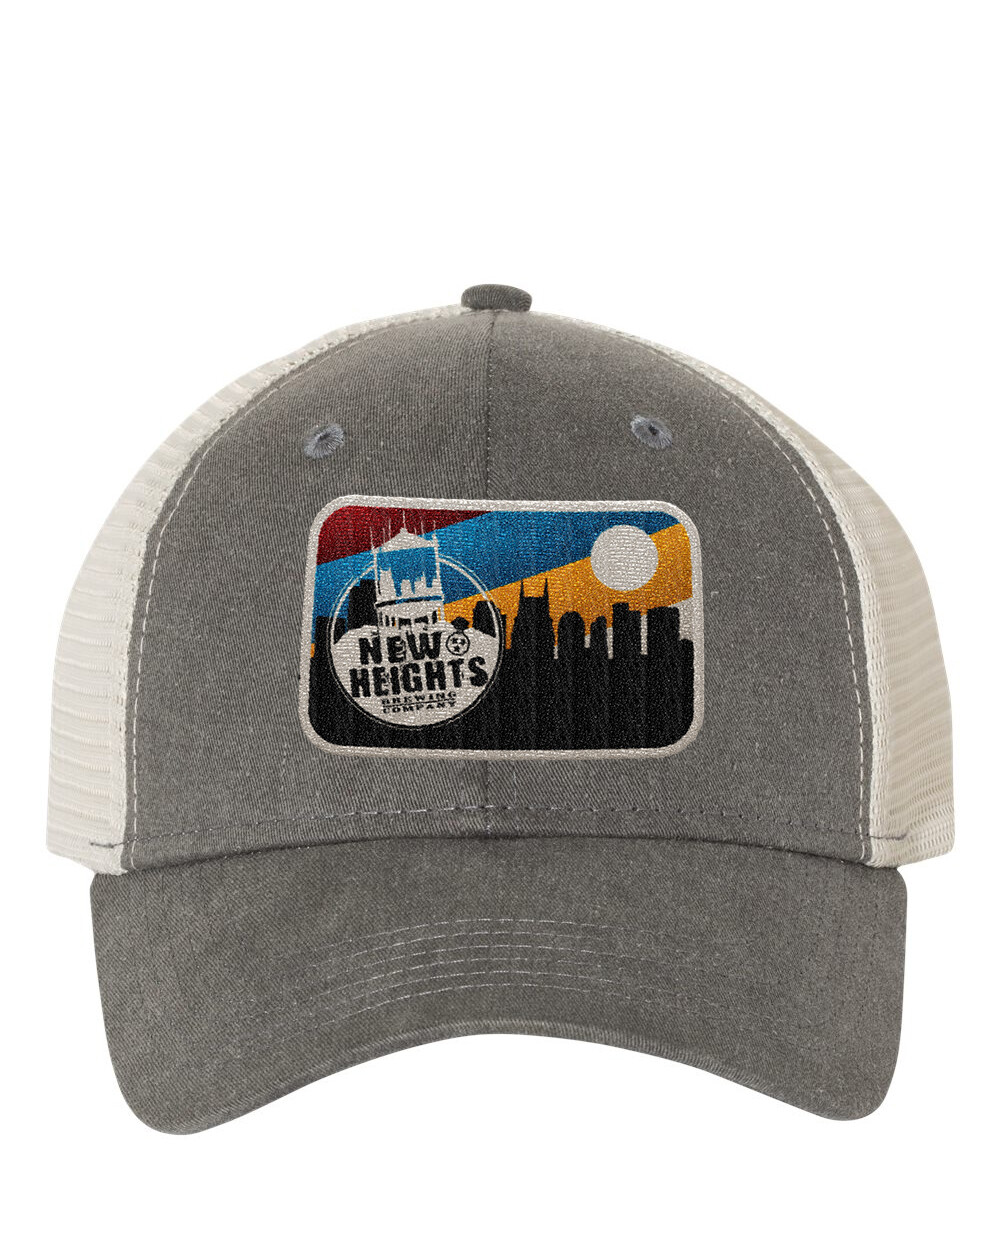 Trucker Cap/Mesh Back with New Heights Skyline Patch